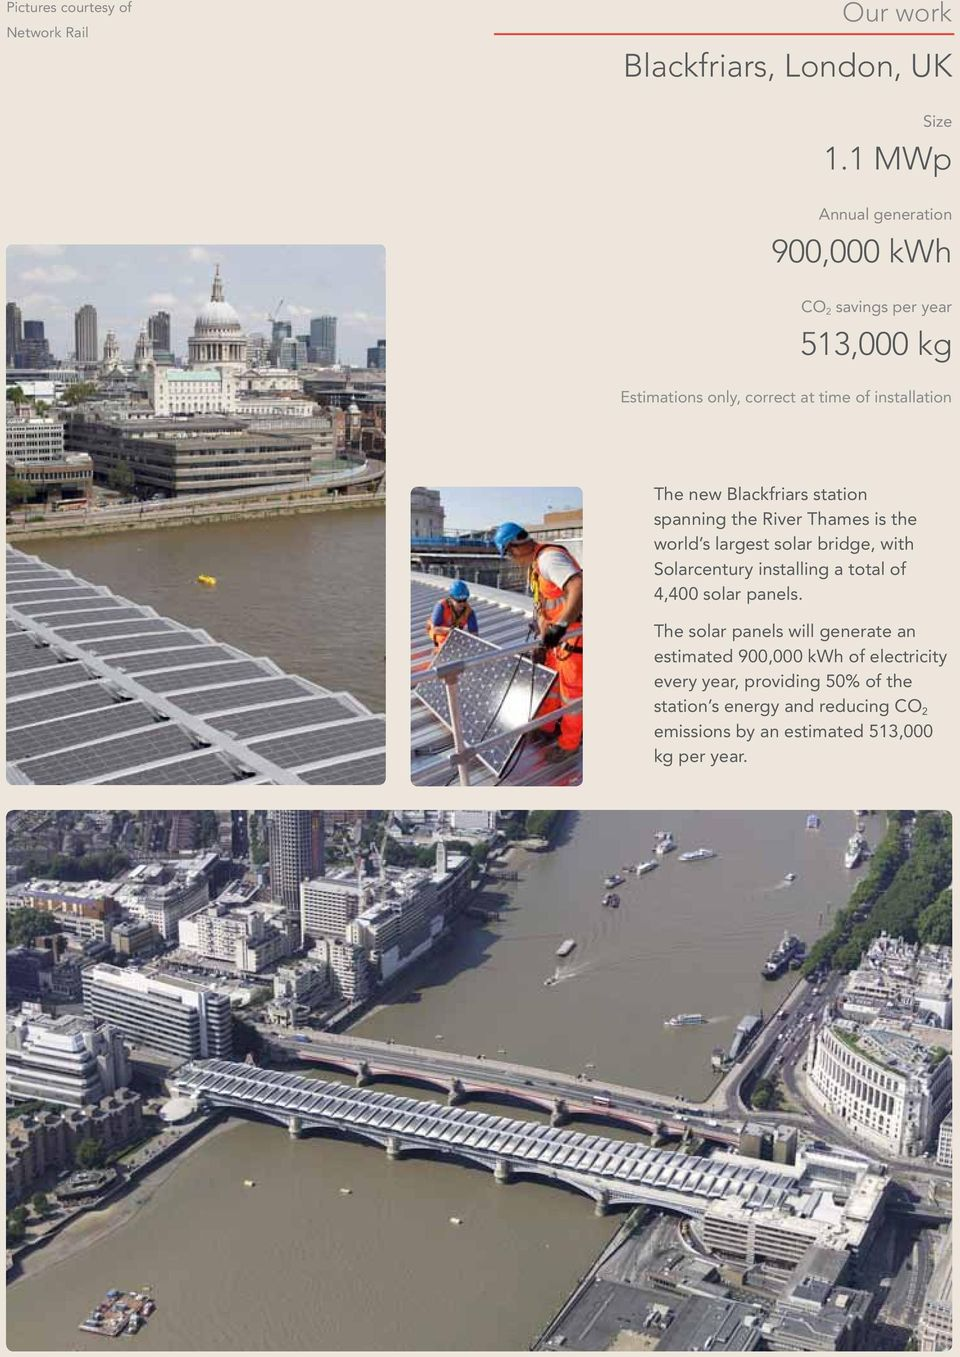 Blackfriars station spanning the River Thames is the world s largest solar bridge, with Solarcentury installing a total of 4,400